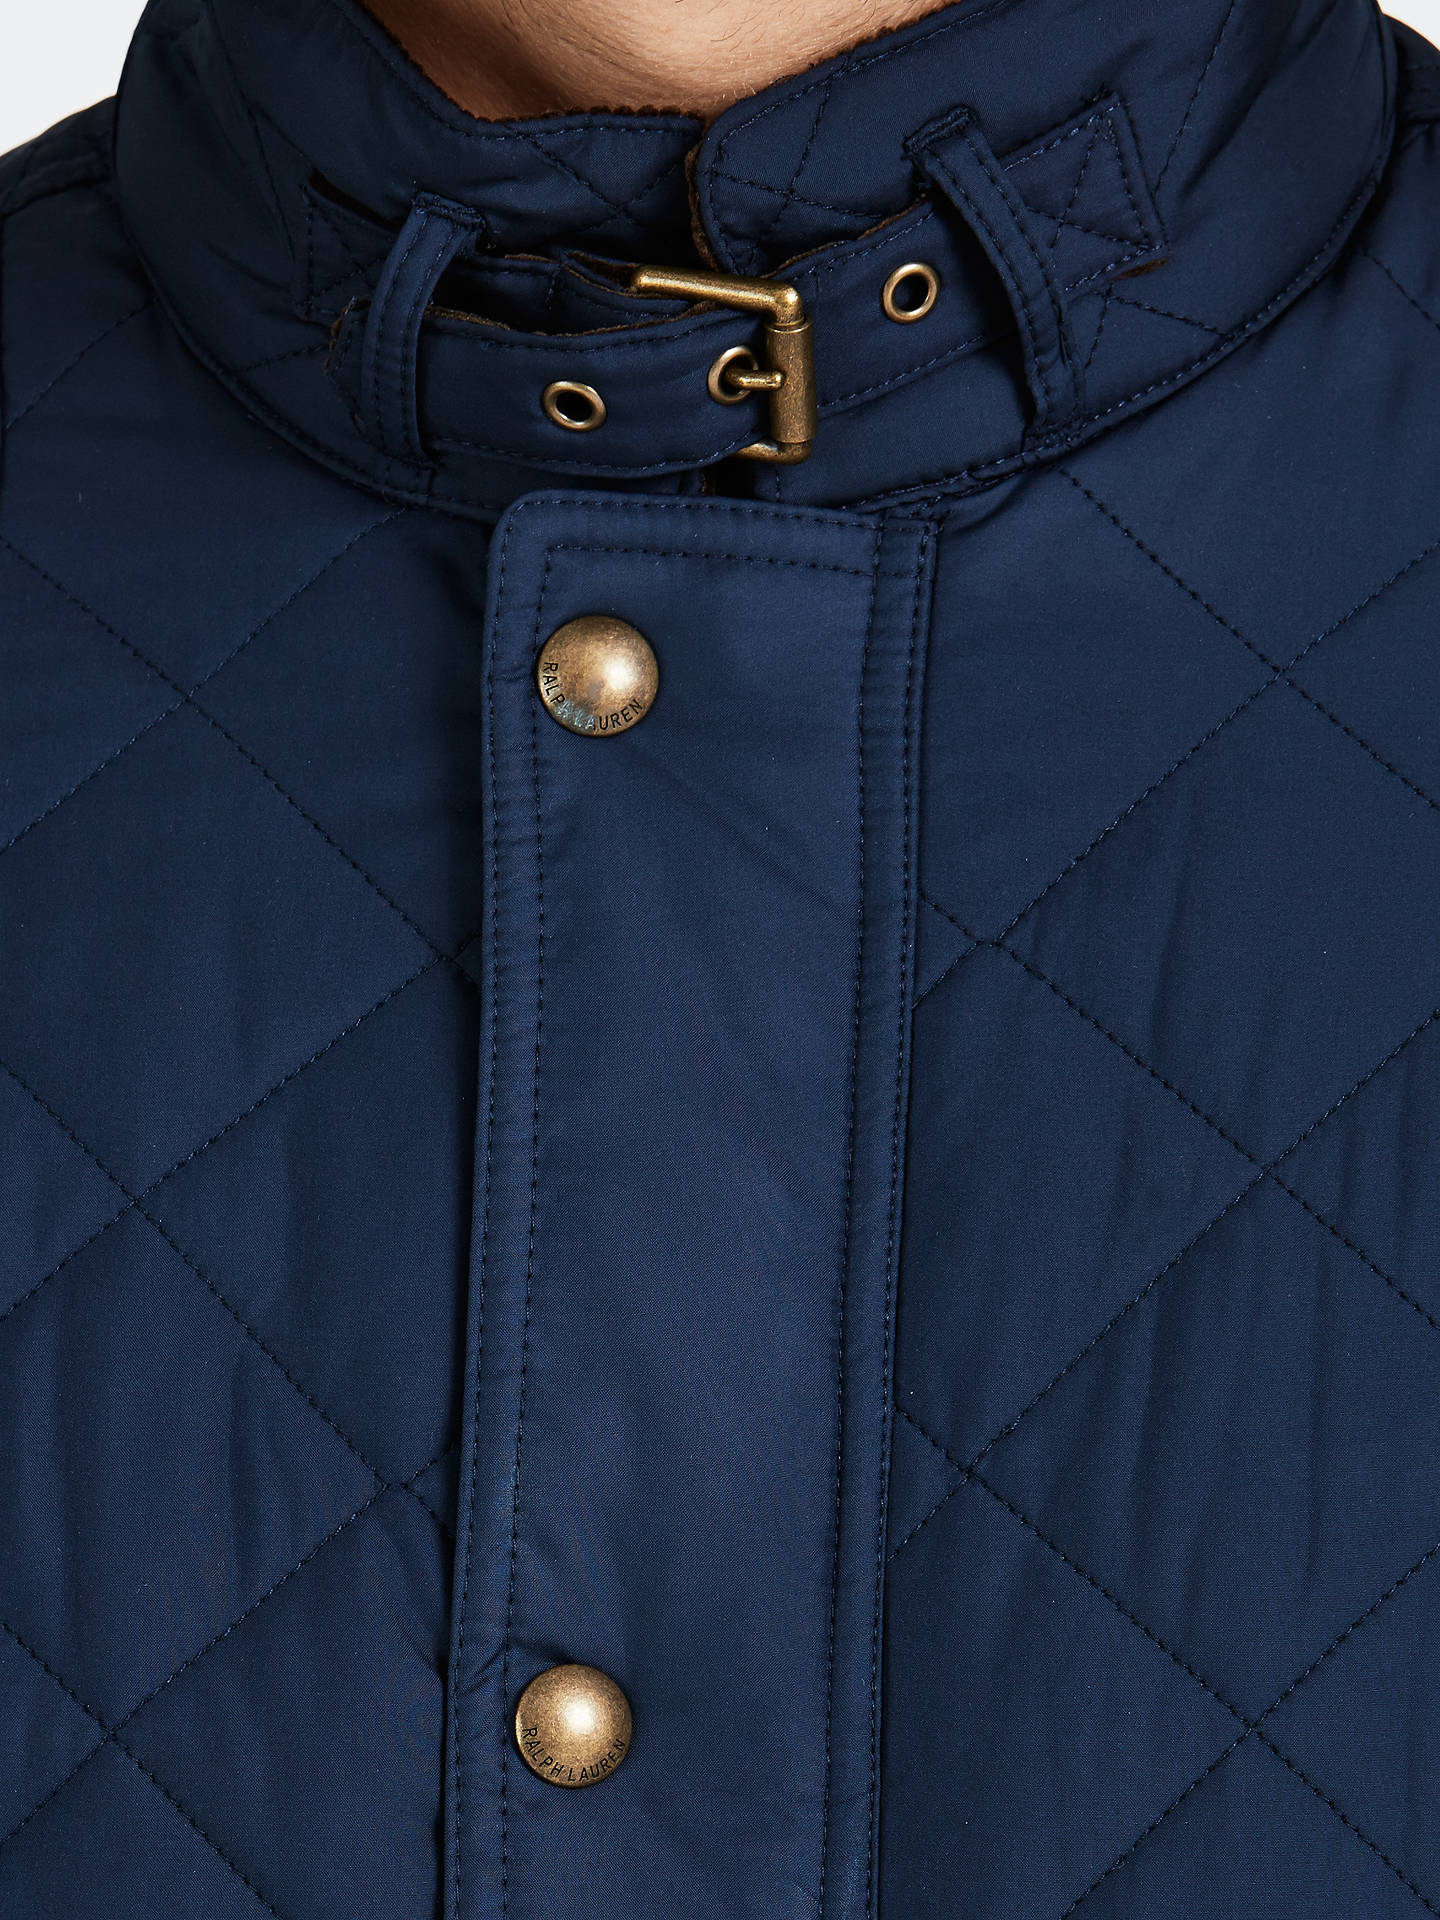 Bomber Cadwell Lauren At Lewisamp; Ralph Jacket Partners Quilted John Polo 1cFuT5J3lK